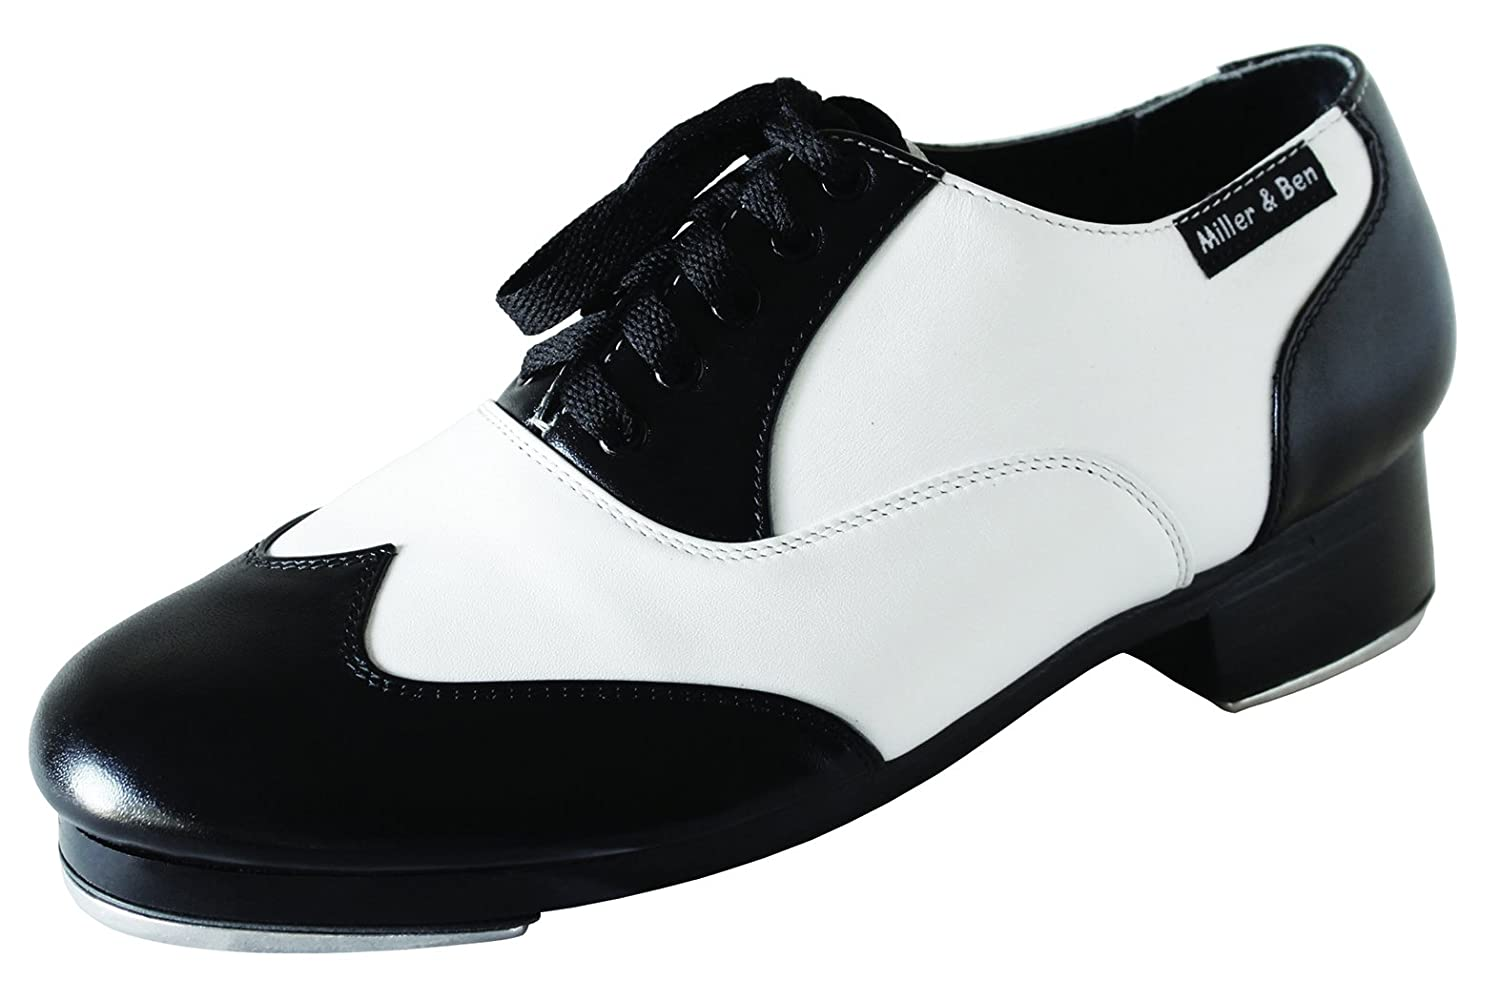 1950s Men's Clothing Miller & Ben Tap Shoes Jazz-Tap Master Black & White - STANDARD SIZES $285.00 AT vintagedancer.com